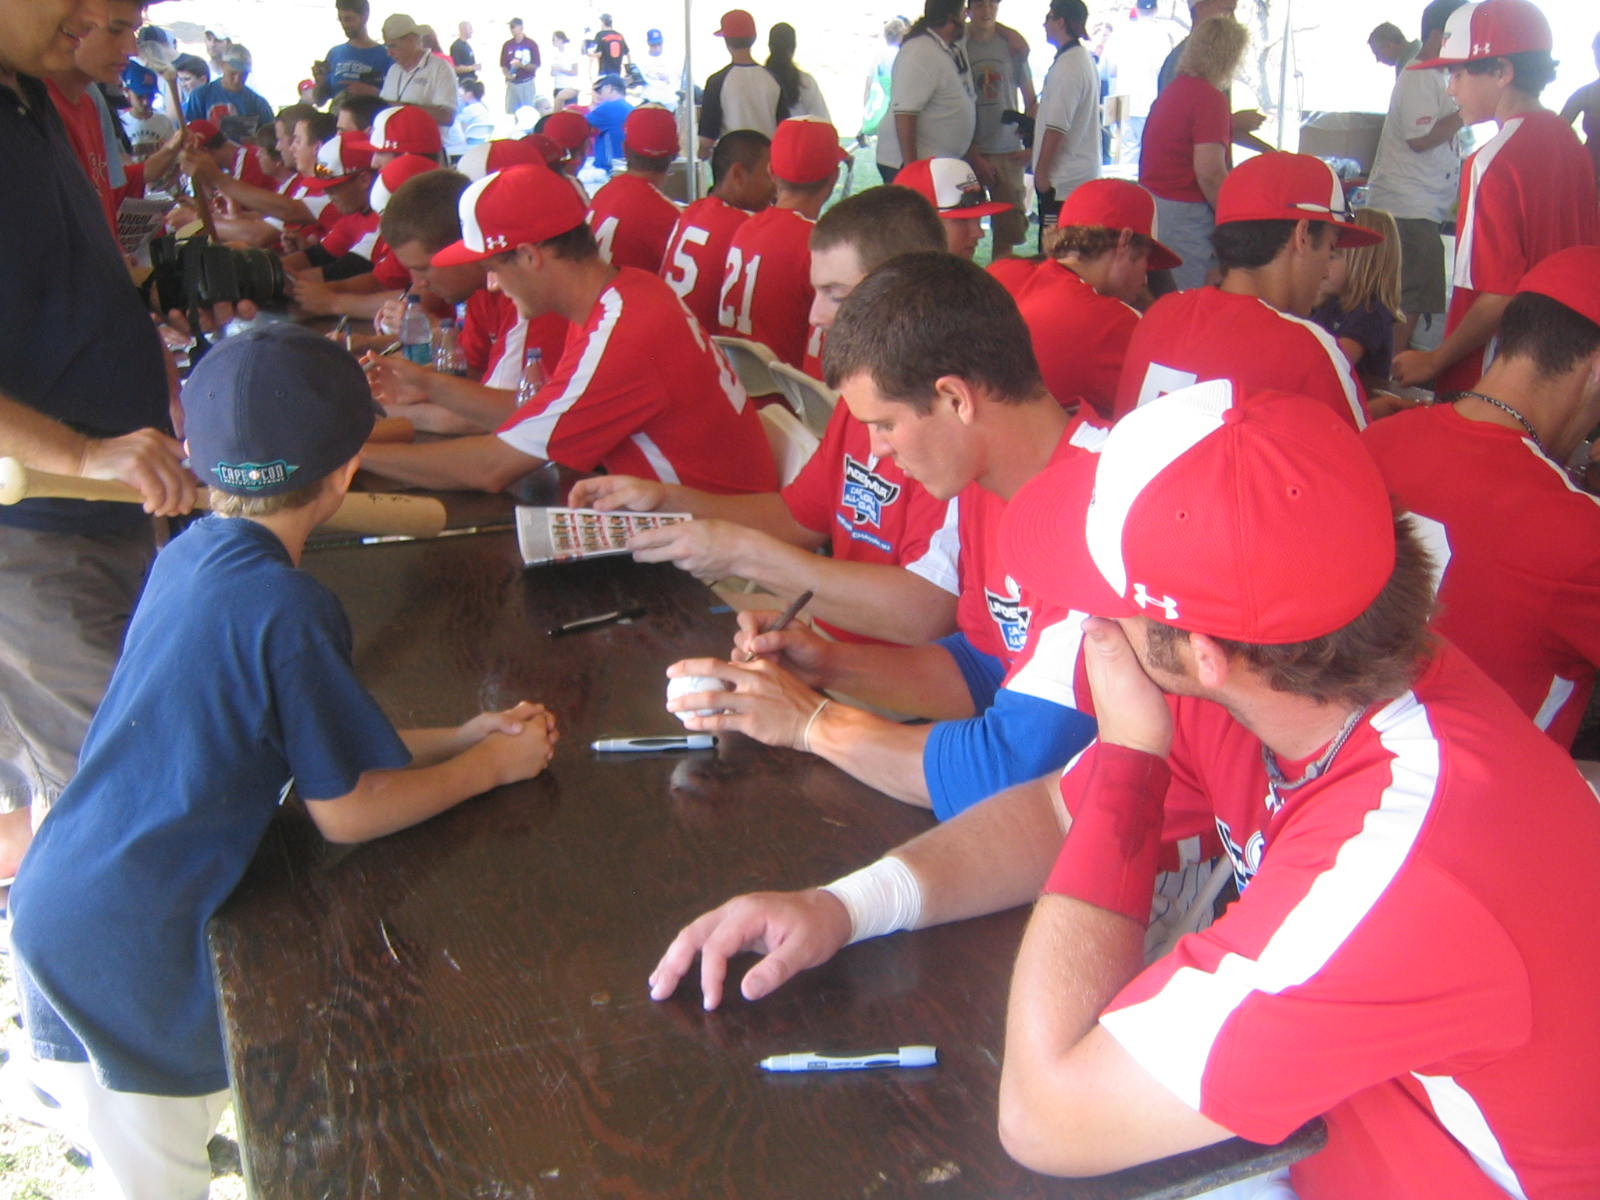 Cape League all-stars signed autographs last week. Now they are preparing for the final week before playoffs.